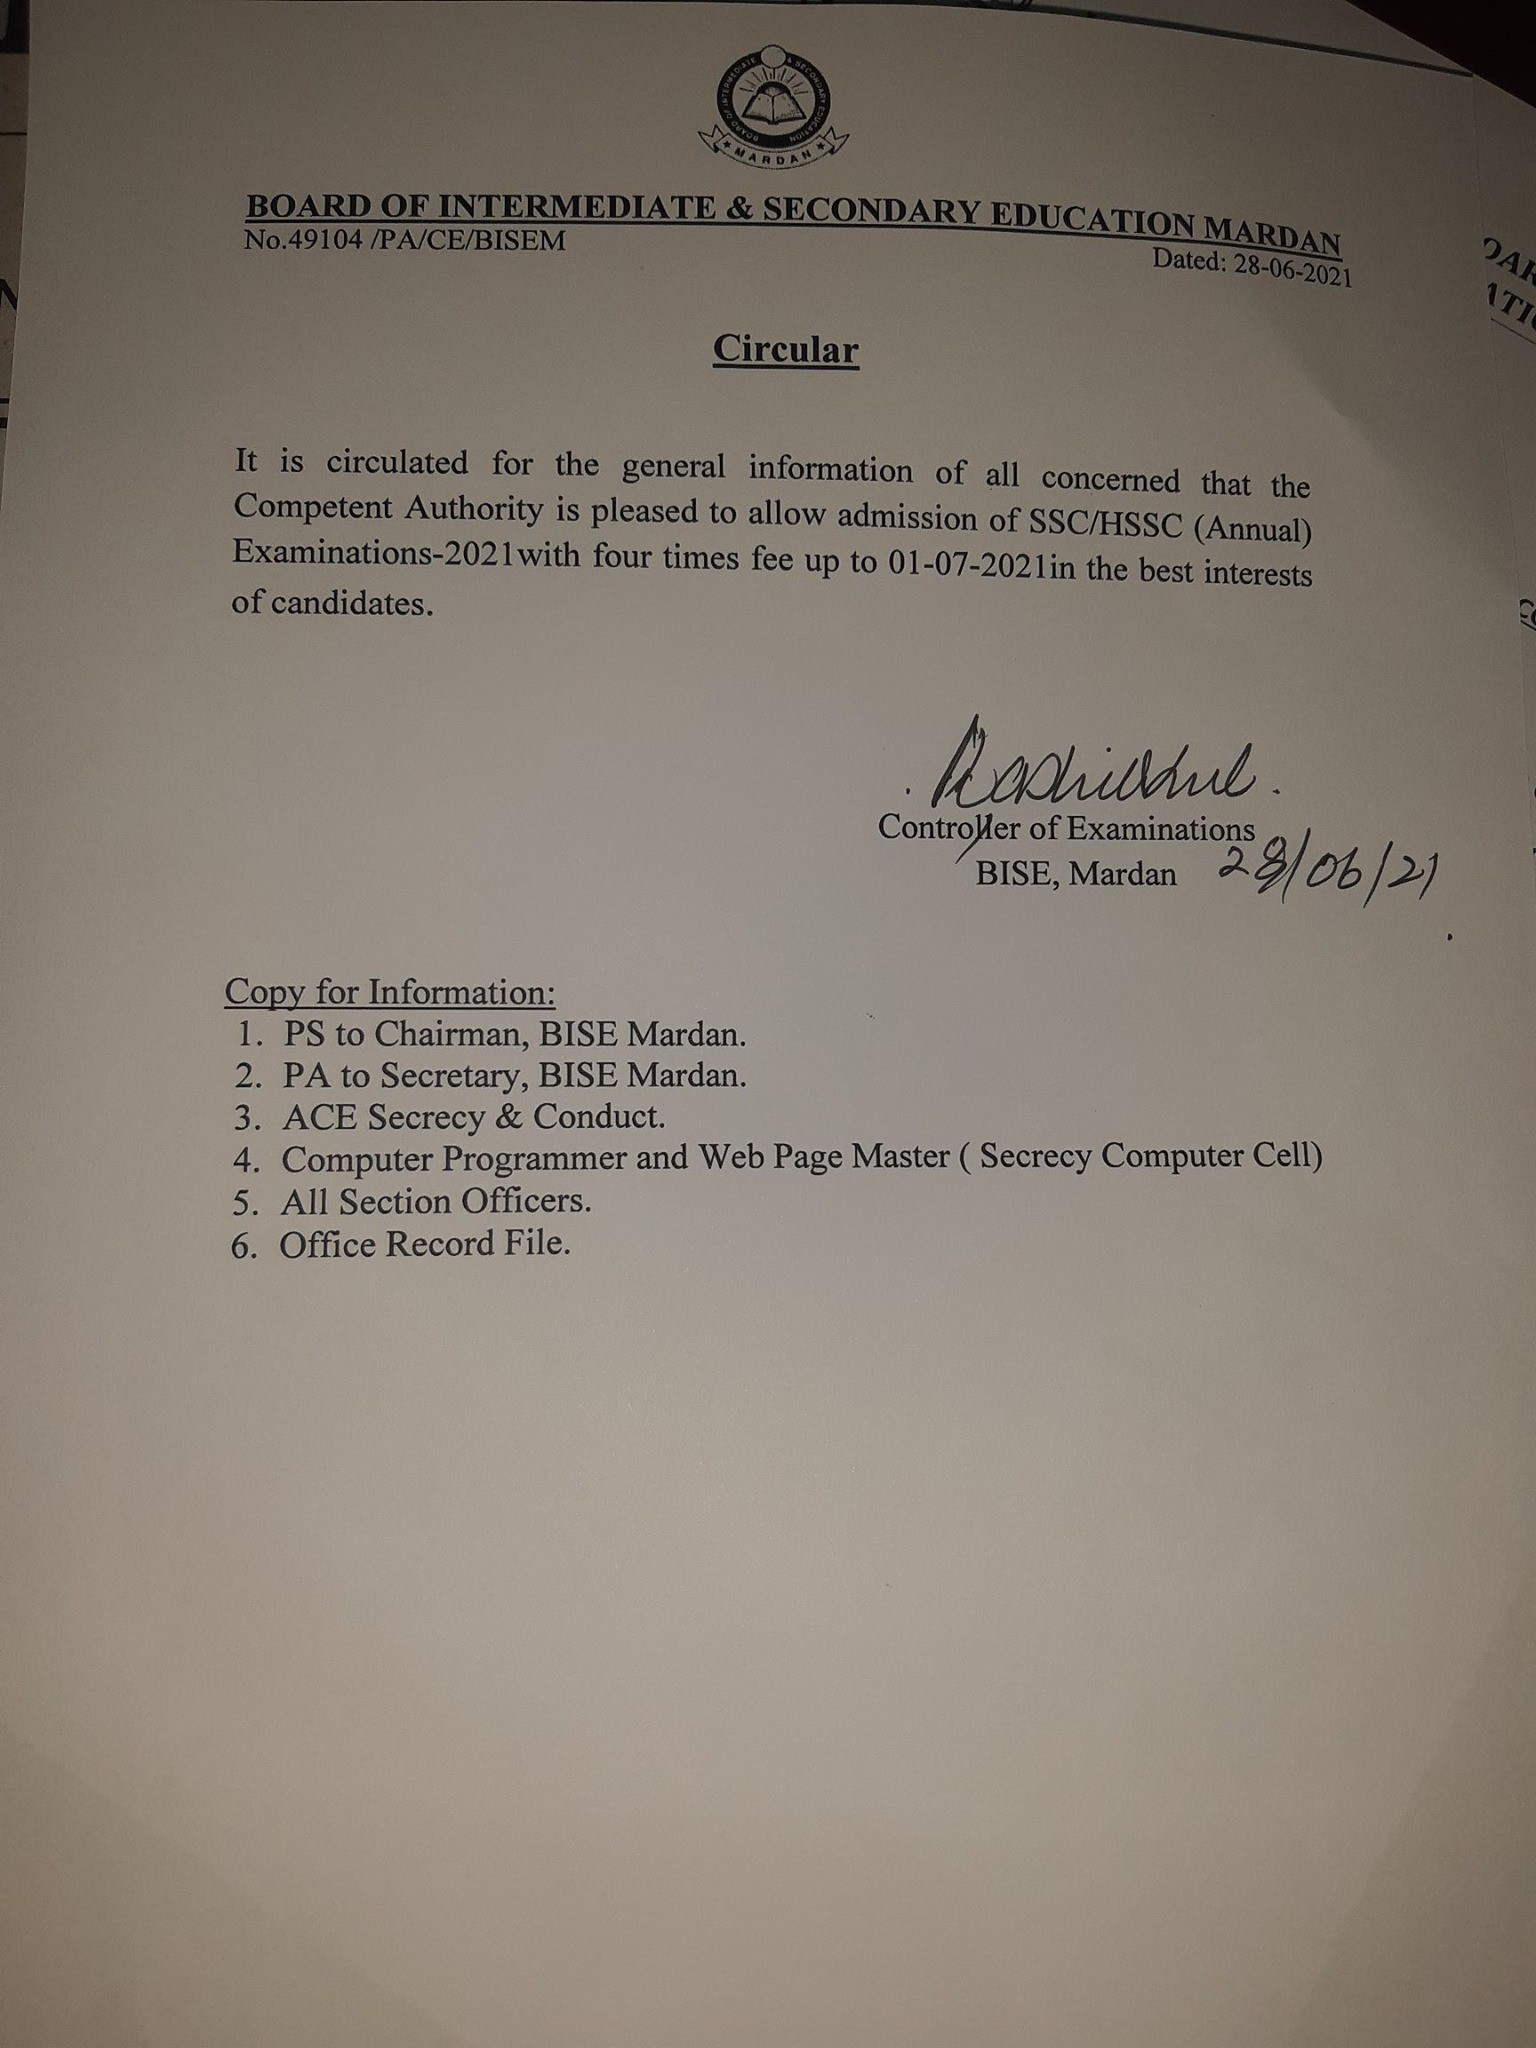 Extension Date of Admission Submission 2021 Exams with Four Times Fee – Mardan